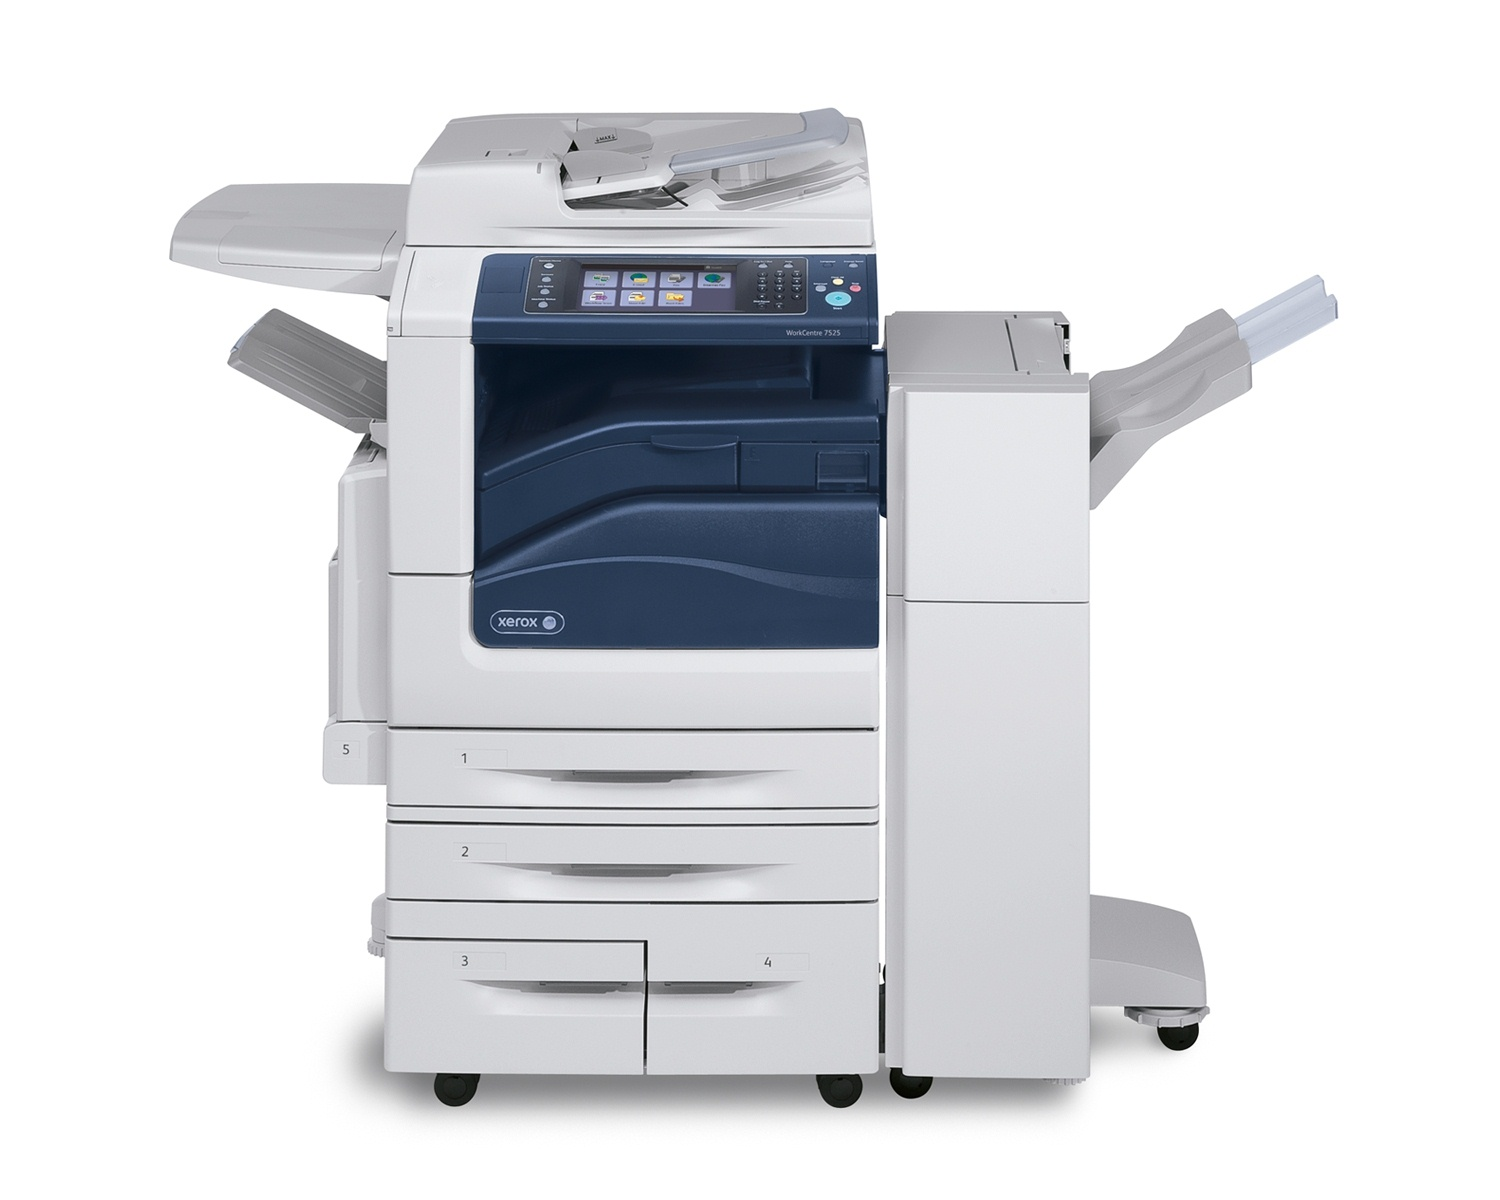 Xerox WorkCentre 7525 Used $ 2799